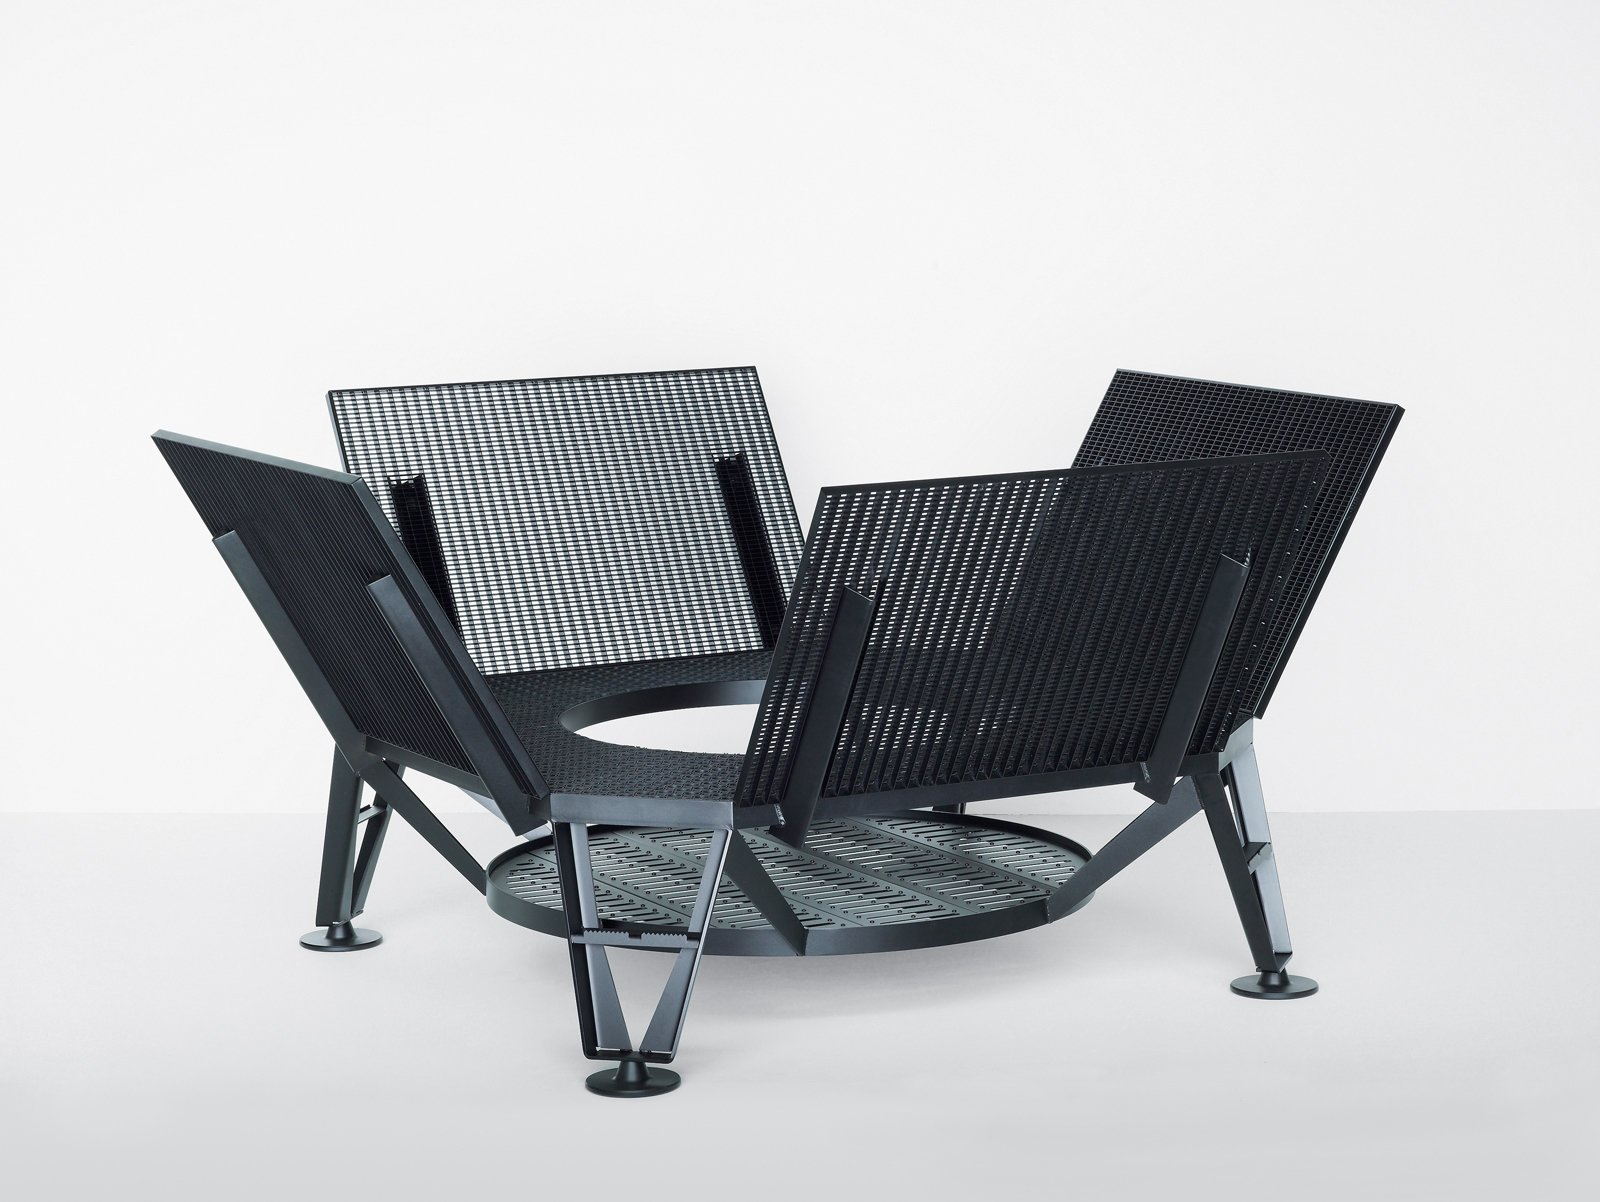 Landen public seating for Vitra Edition, 2007.  Photo 6 of 26 in Industrial Designer Focus: Konstantin Grcic